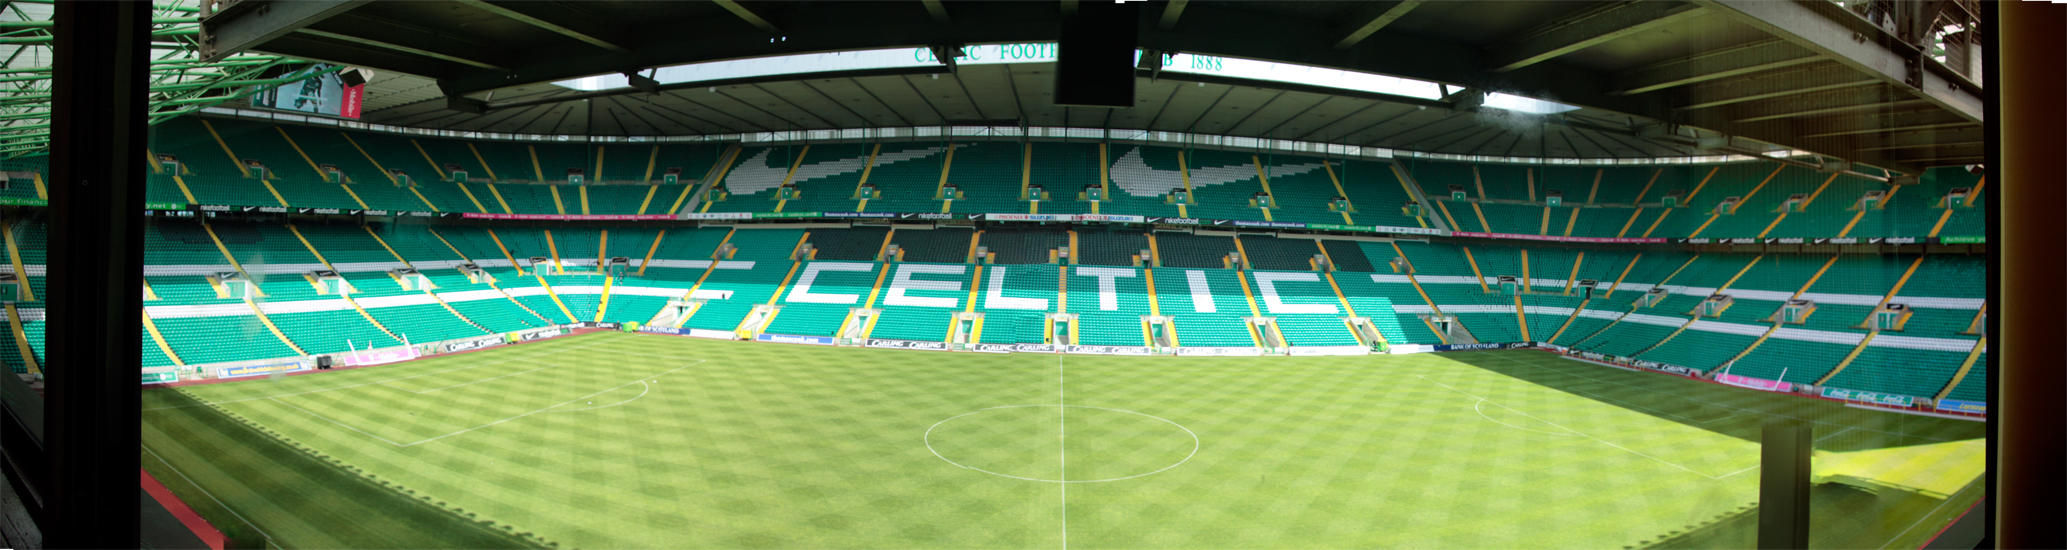 Celtic Park Wallpaper